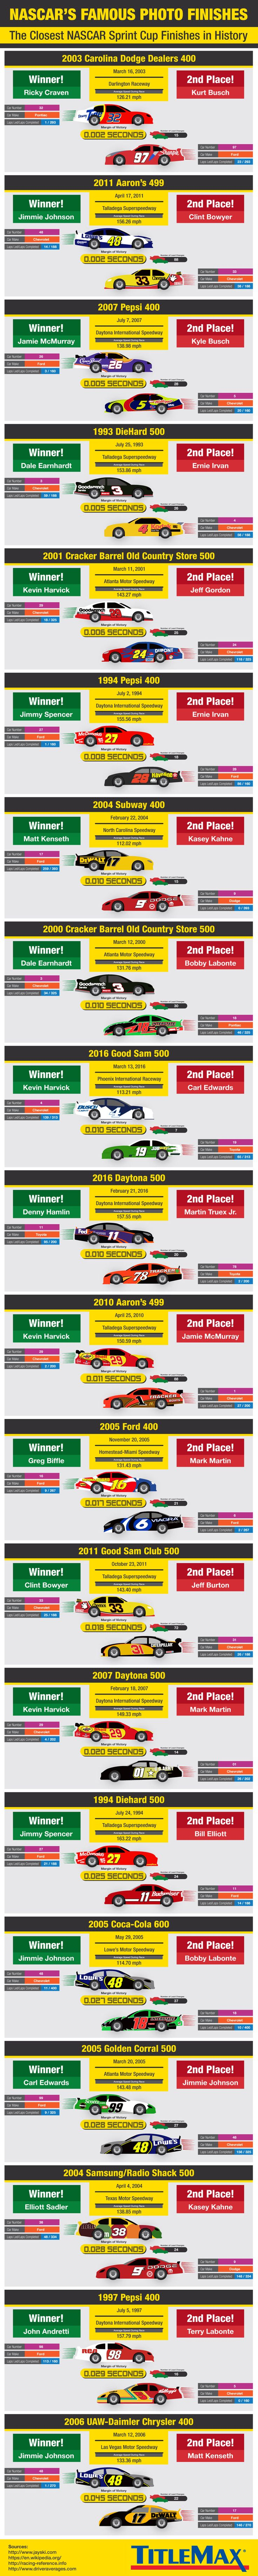 Closest Finishes in NASCAR Sprint Cup Series History - Sports Infographic. Topic: race, car